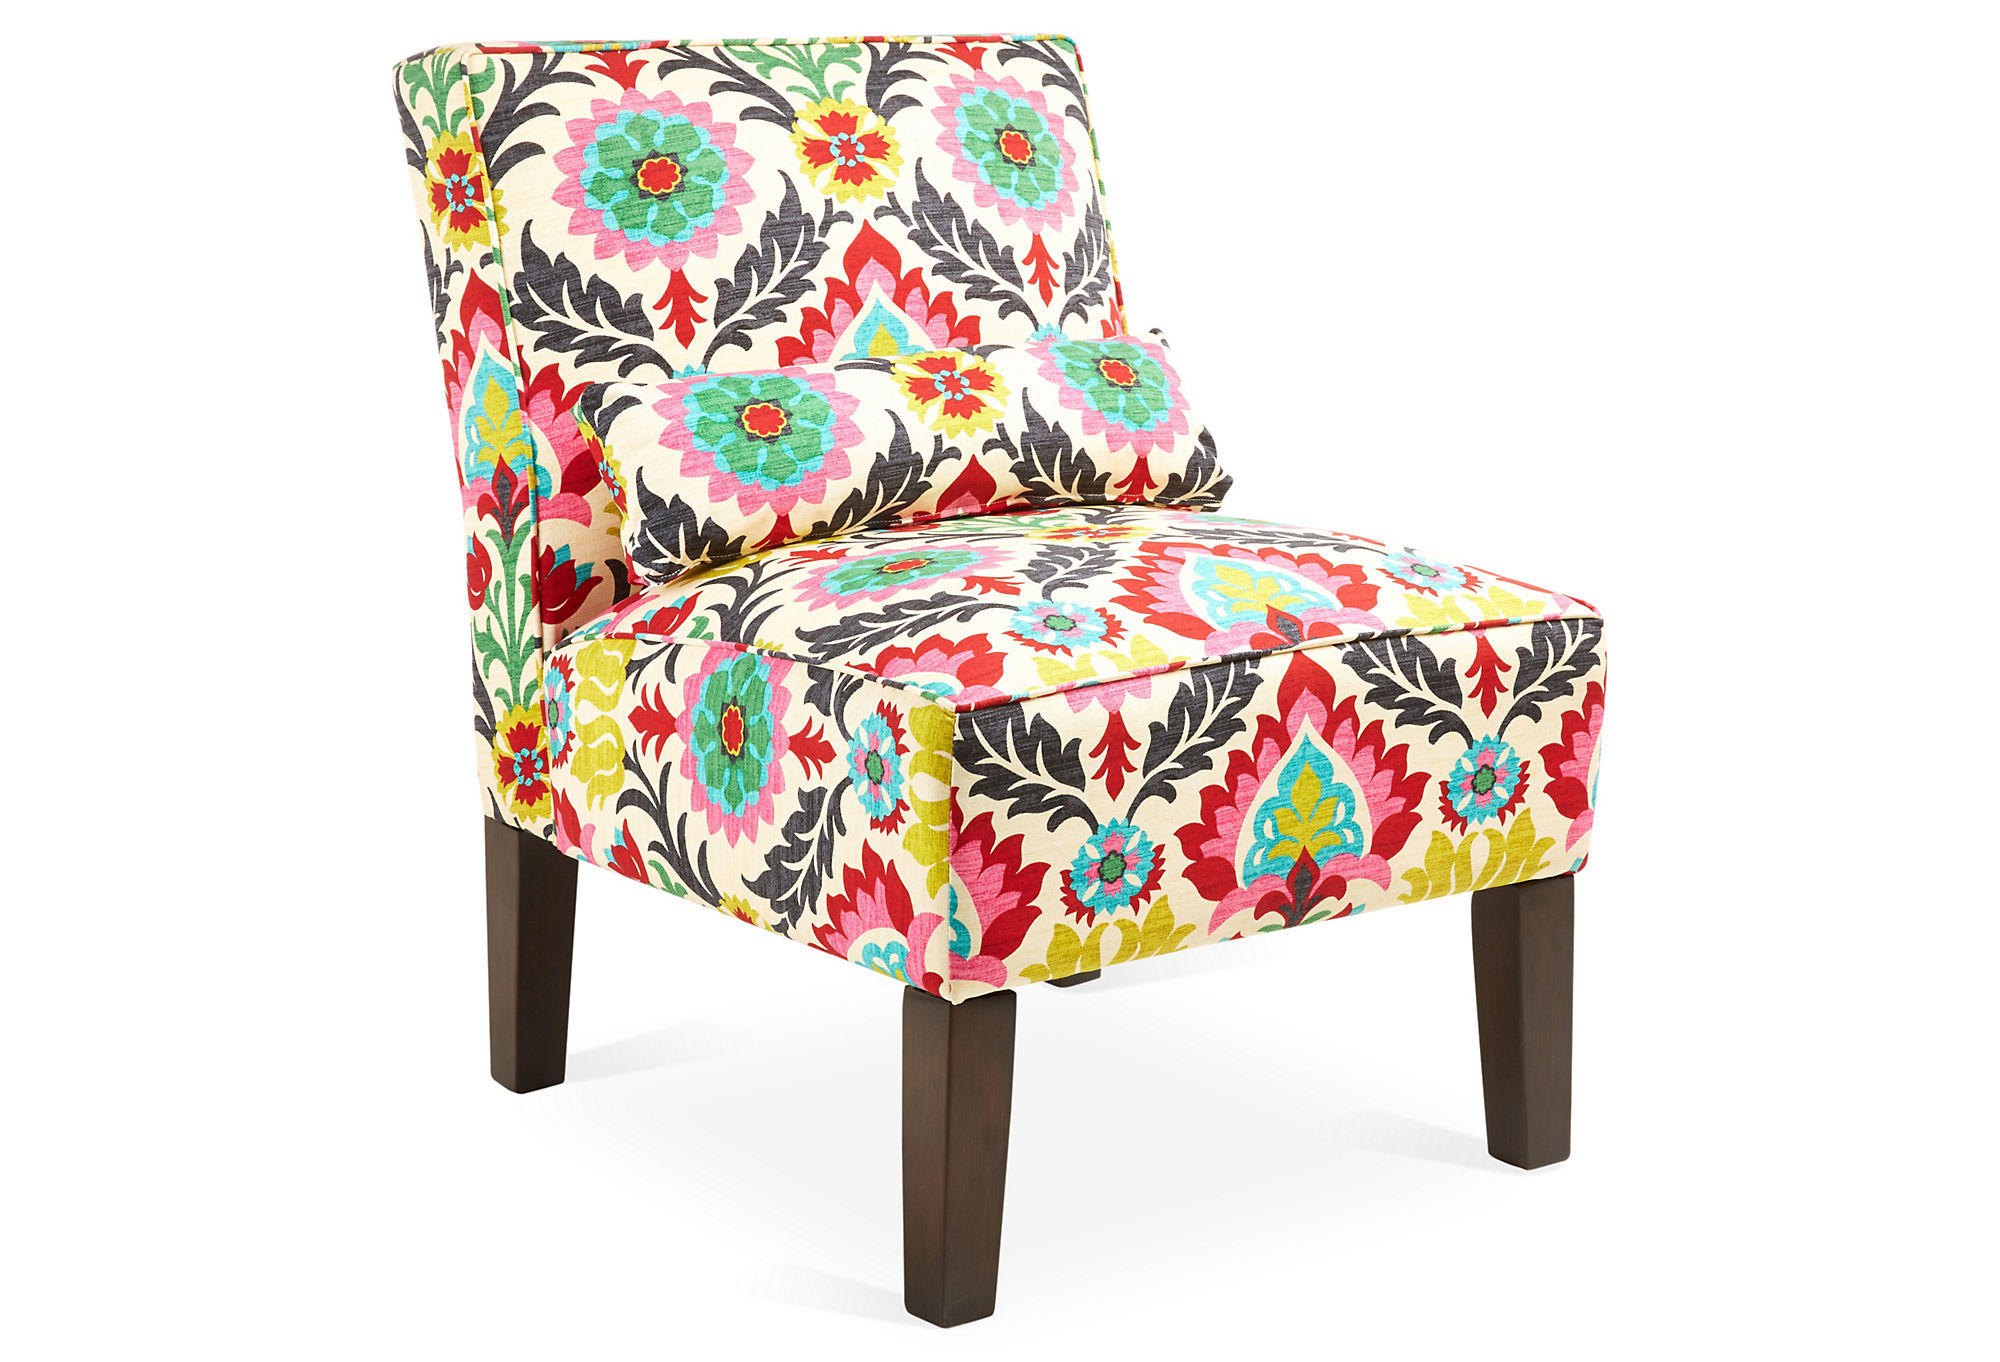 Multi Colored Accent Chairs Bergman Armless Cotton Chair Pink Multi From One Kings Lane